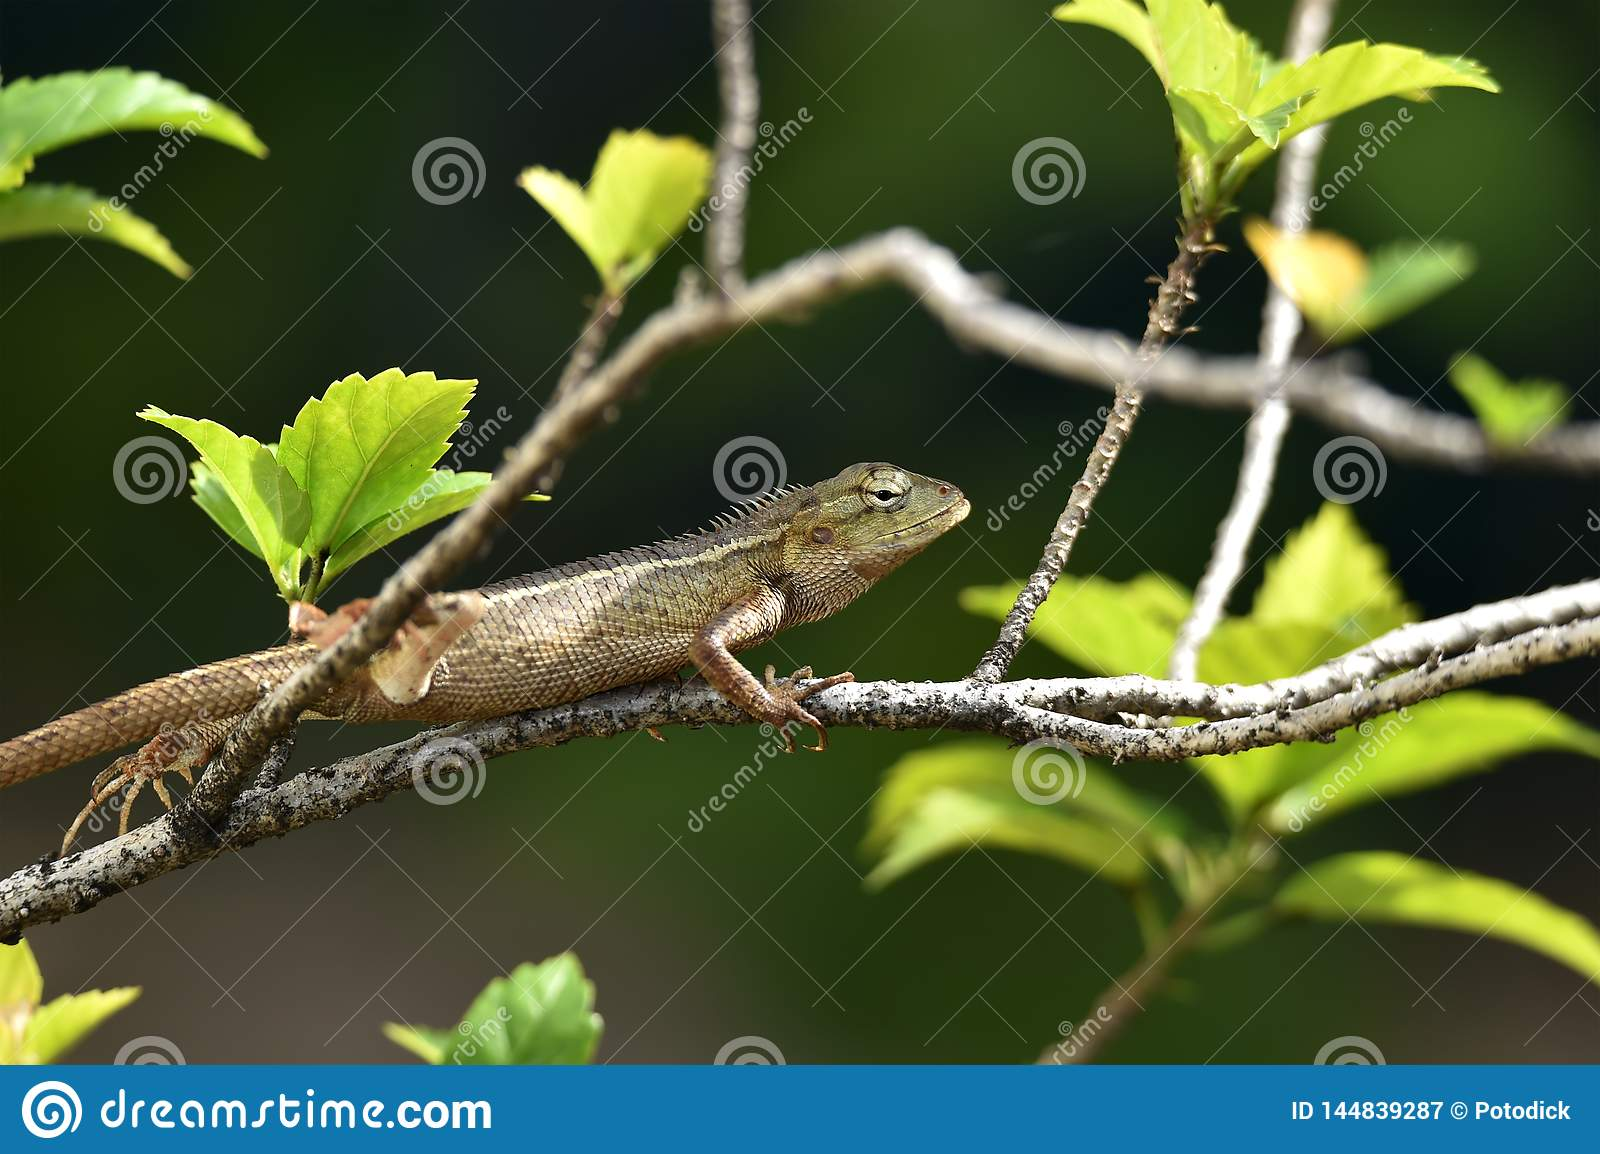 The creeping animals that live in these trees are called grayish brown chameleons